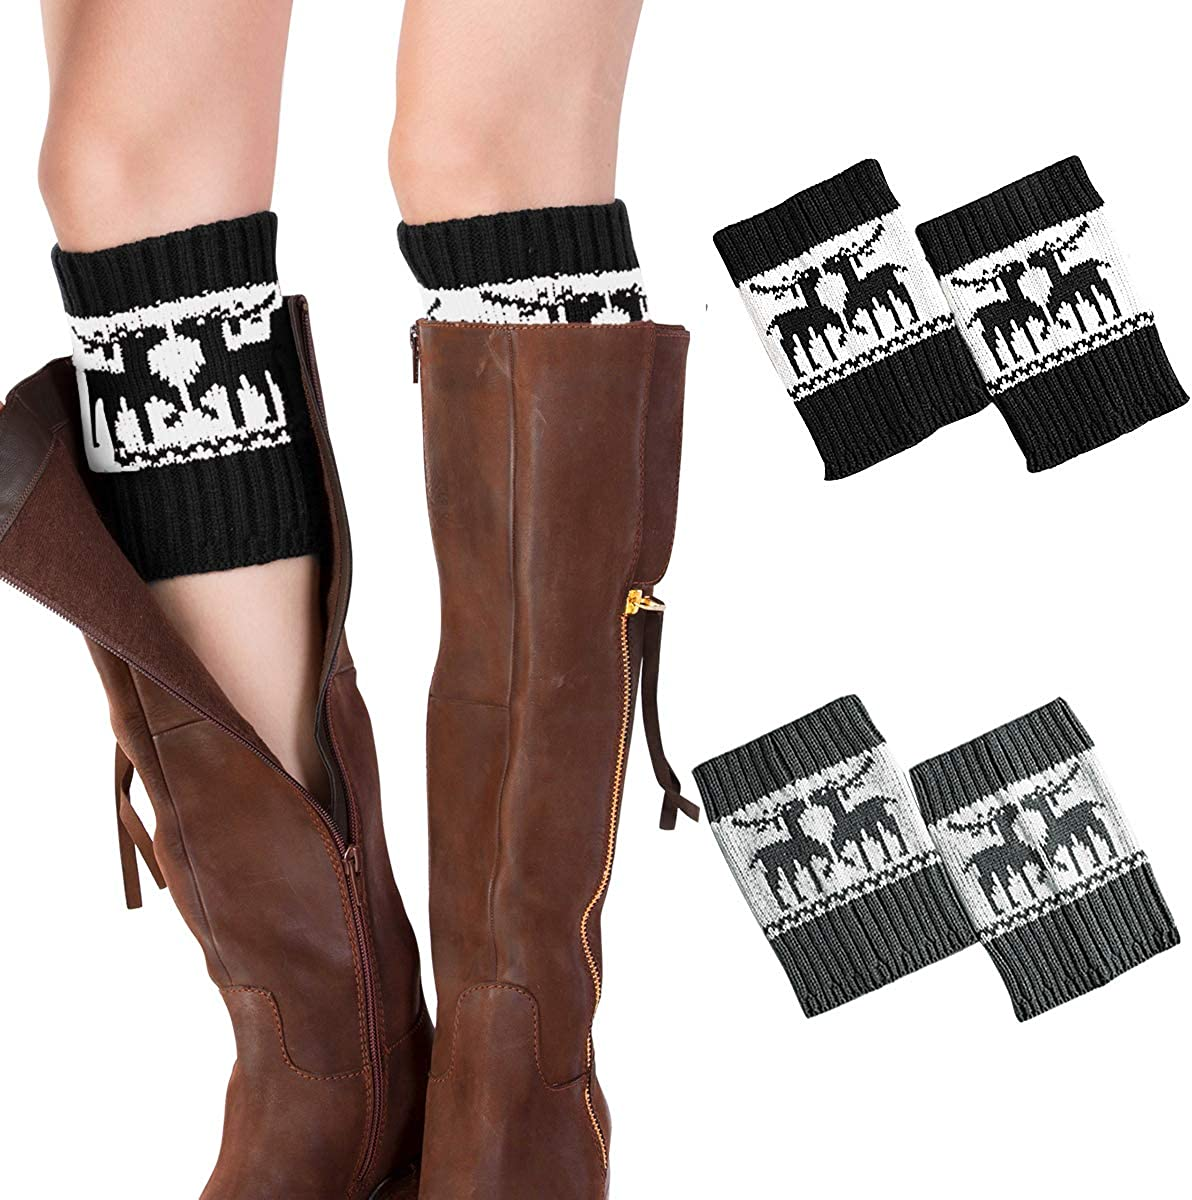 Womens Knit Crochet Cuffs Toppers Ankle Leg Warmers Legging Boot Socks Stocking